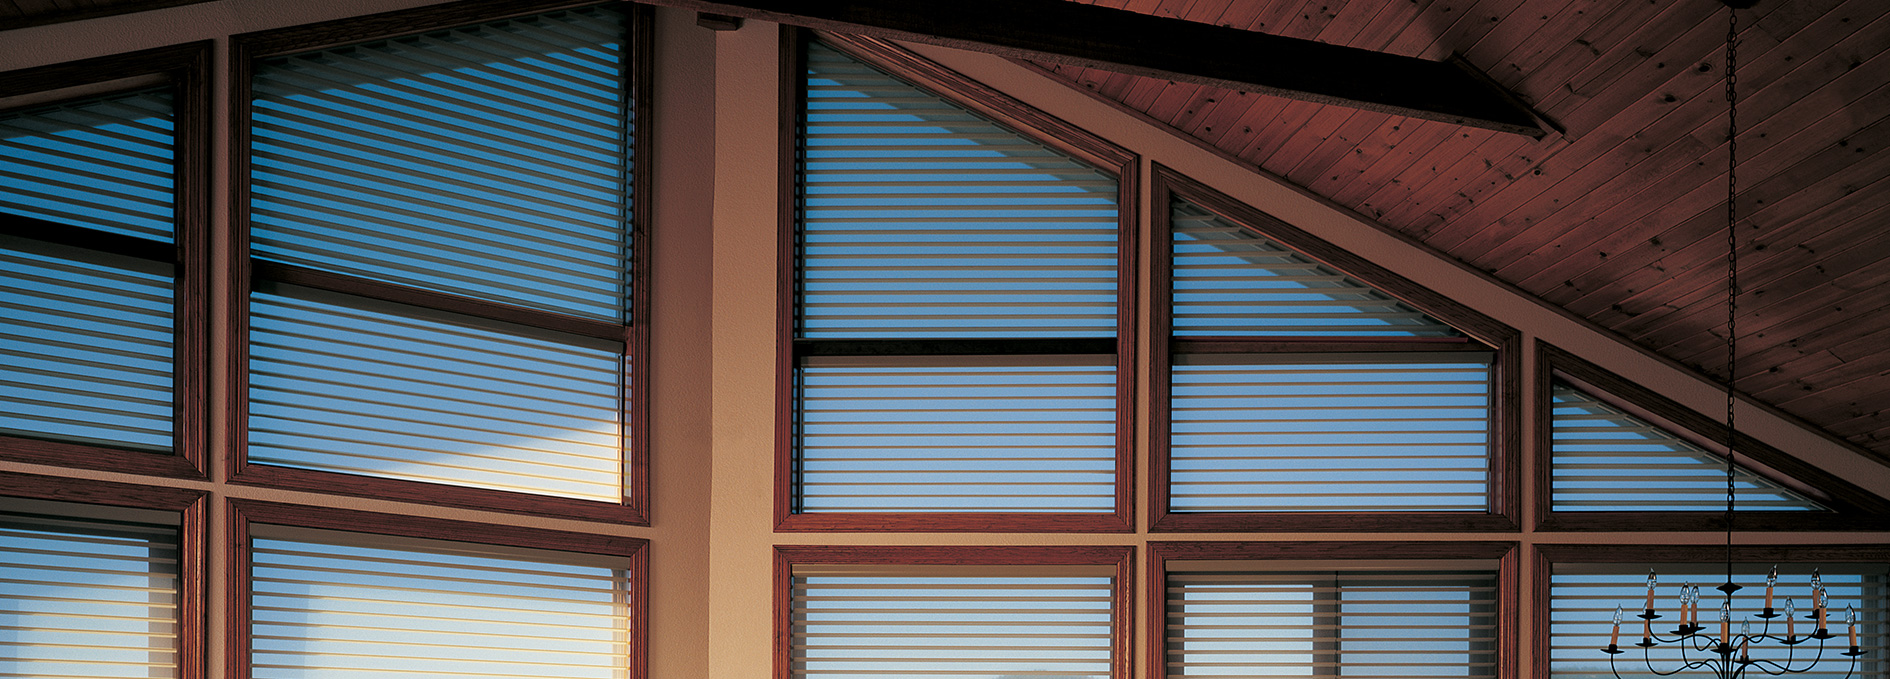 Blinds Shutters Shades Angled Windows Today S